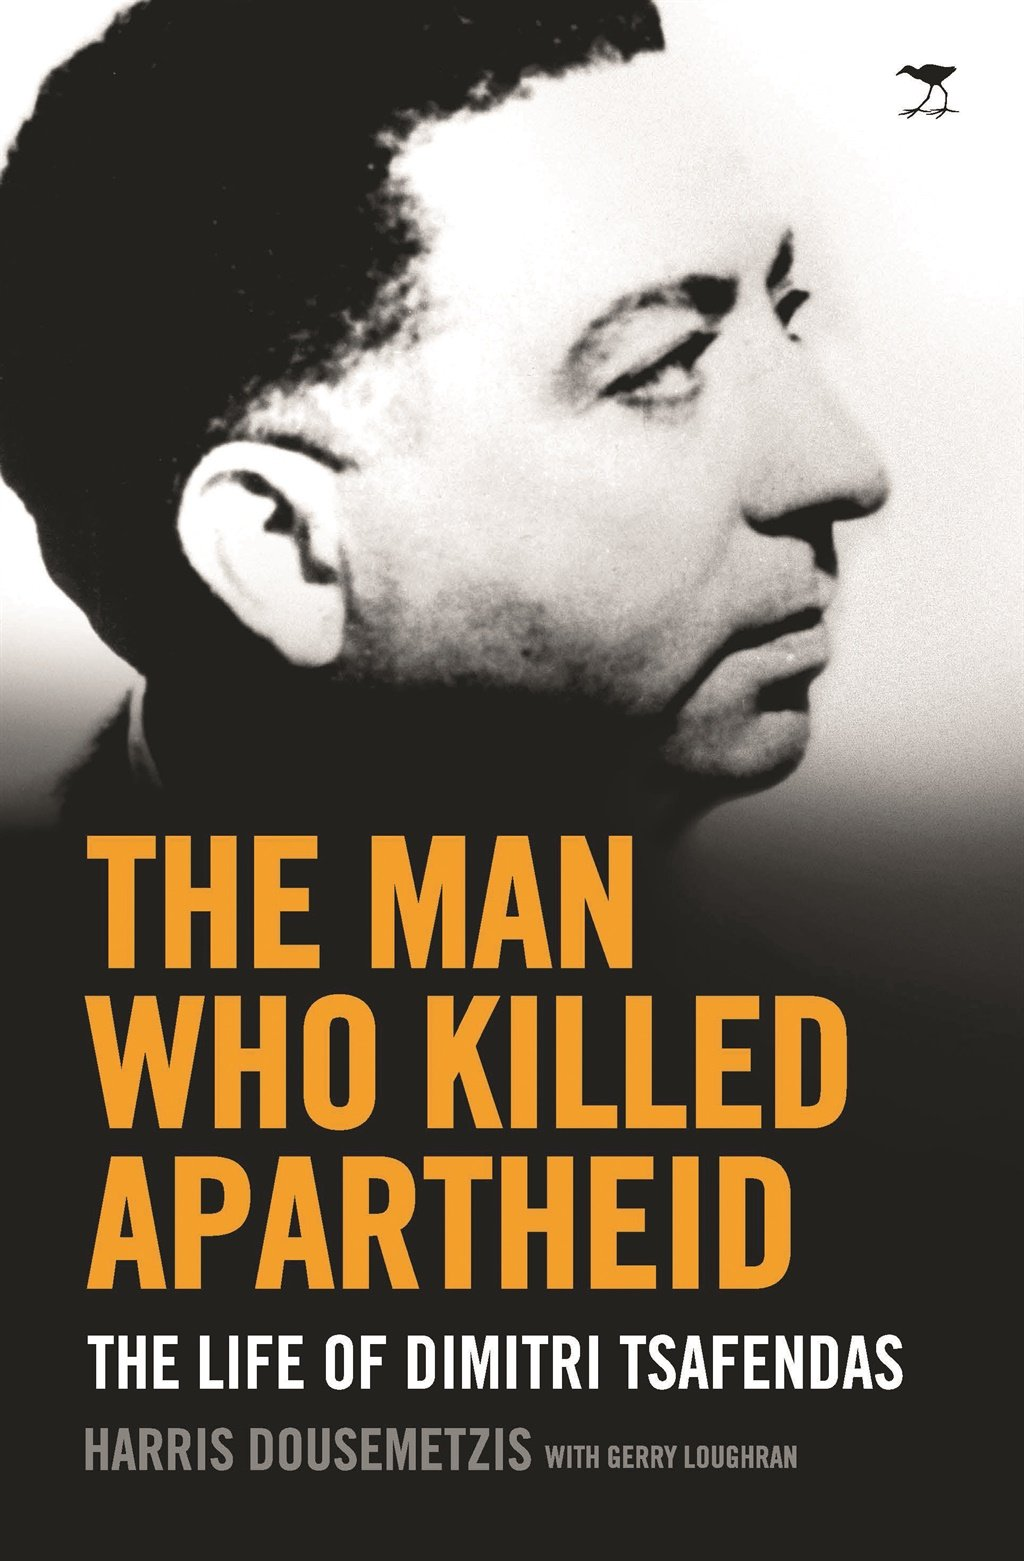 Image result for THE MAN WHO KILLED APARTHEID BOOK